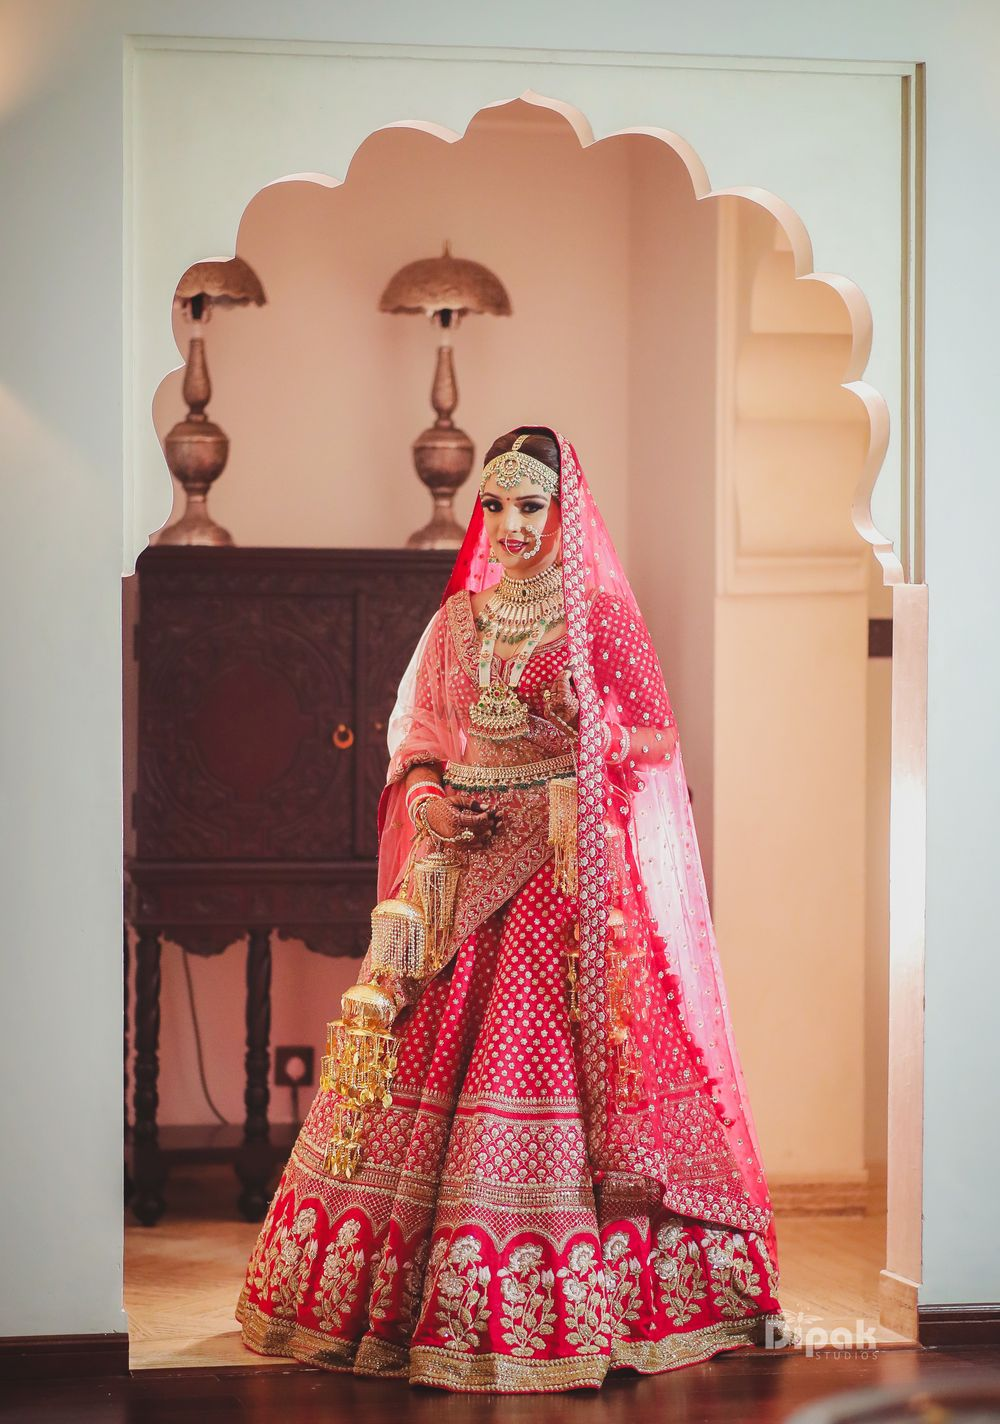 Photo of Bride in red and gold bridal lehenga with floral motifs